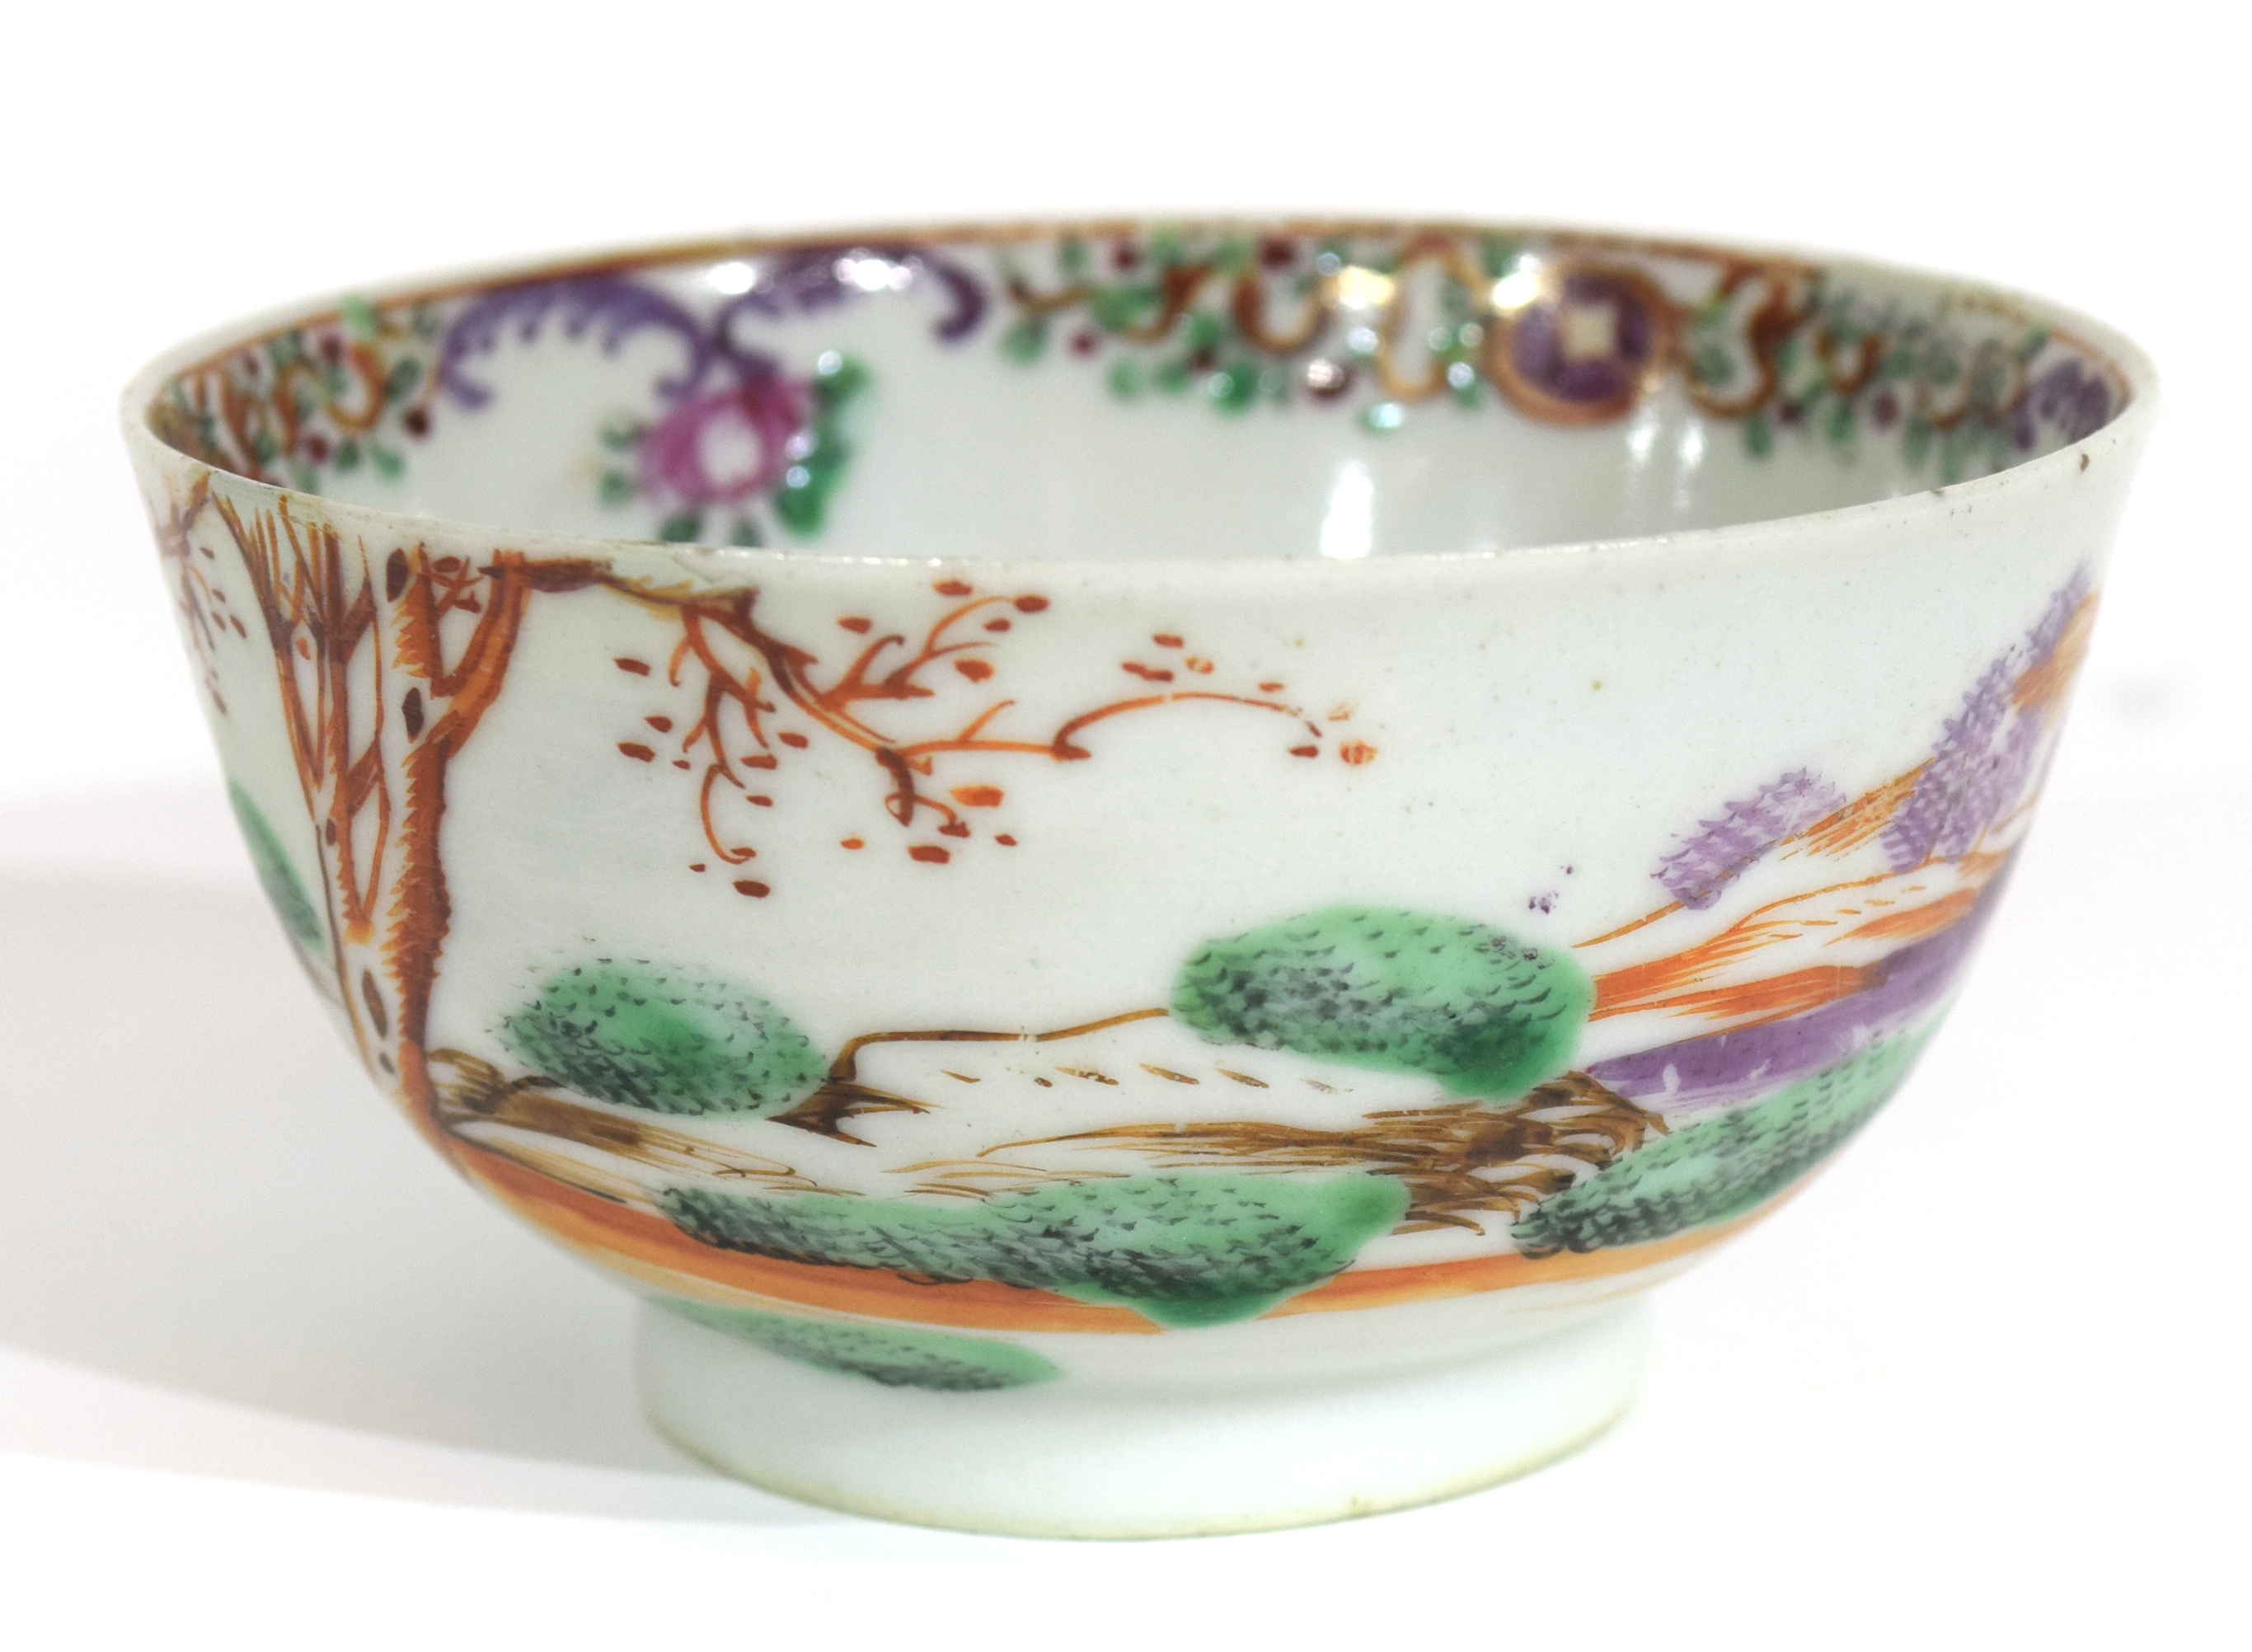 Small Chinese bowl, 18th century - Image 7 of 13